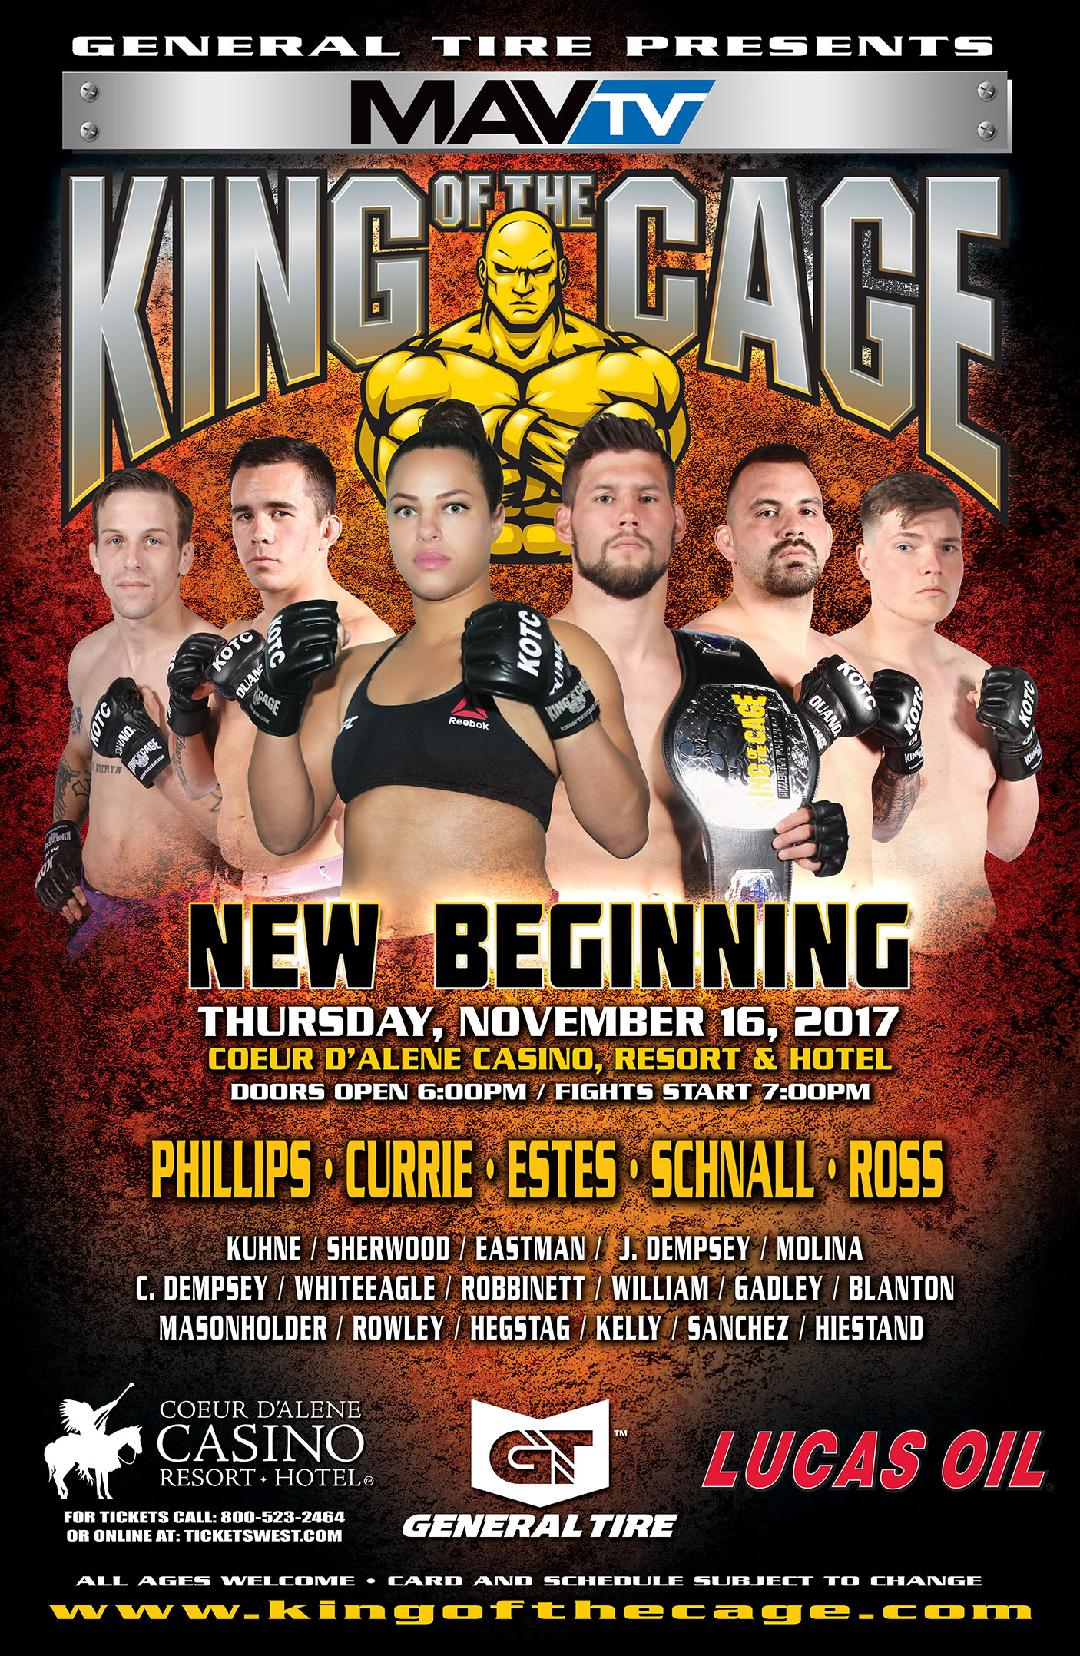 """King of the Cage Announces Main Event for Coeur d'Alene Casino on November 16 for """"NEW BEGINNING"""""""